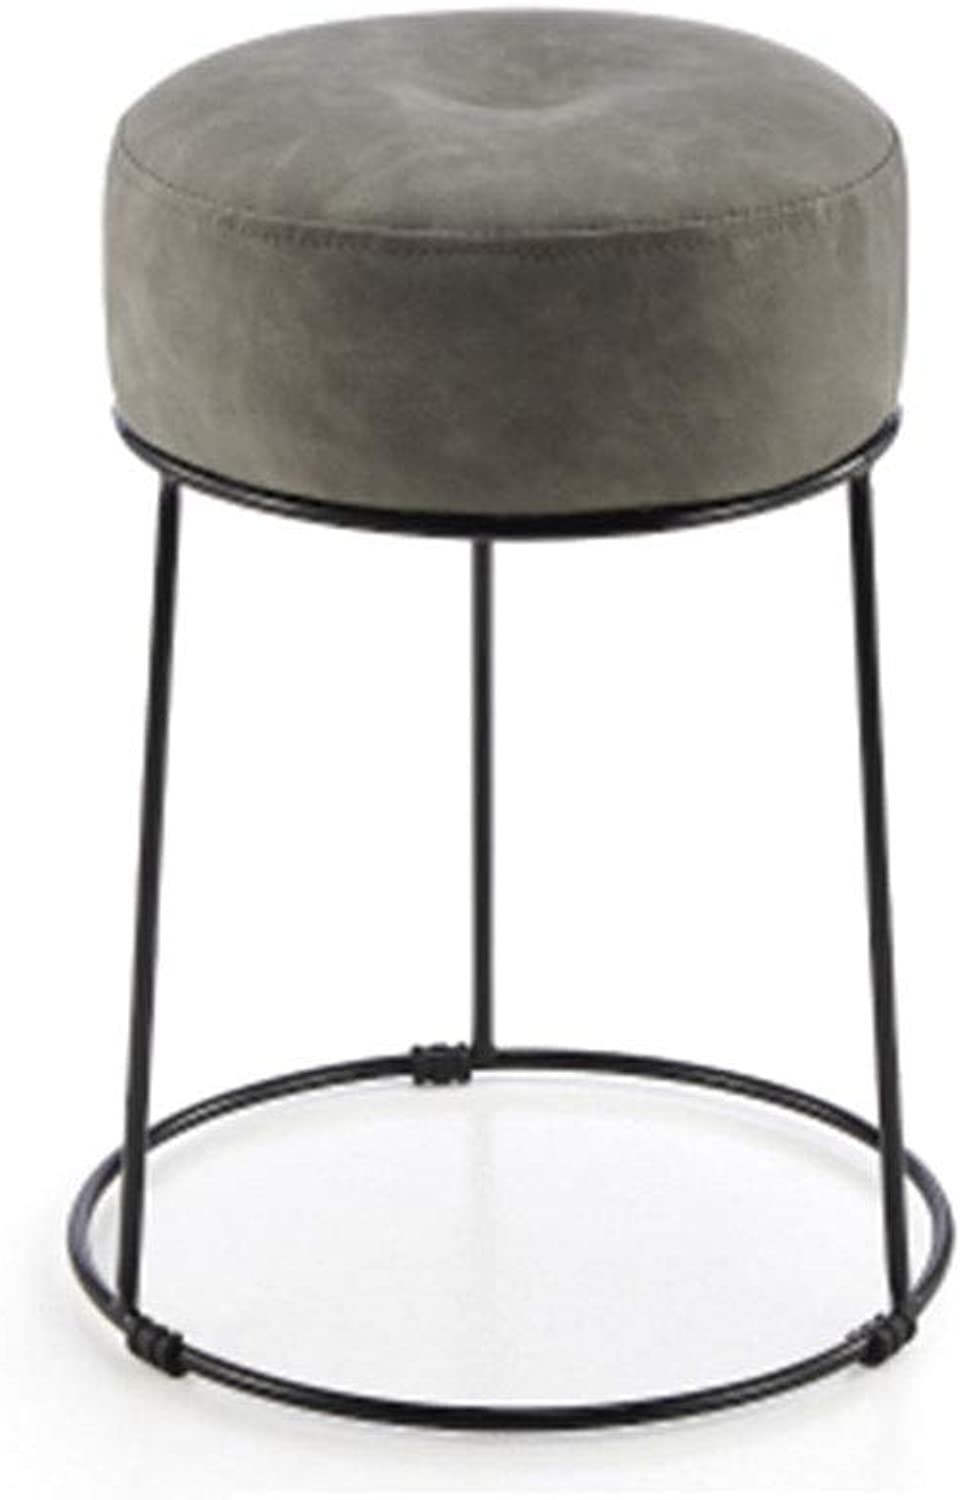 Bar Chair Beauty Stool Iron Stool Barber Chair Creative Nail Stool Household 10 colors 1 Size (color   F)